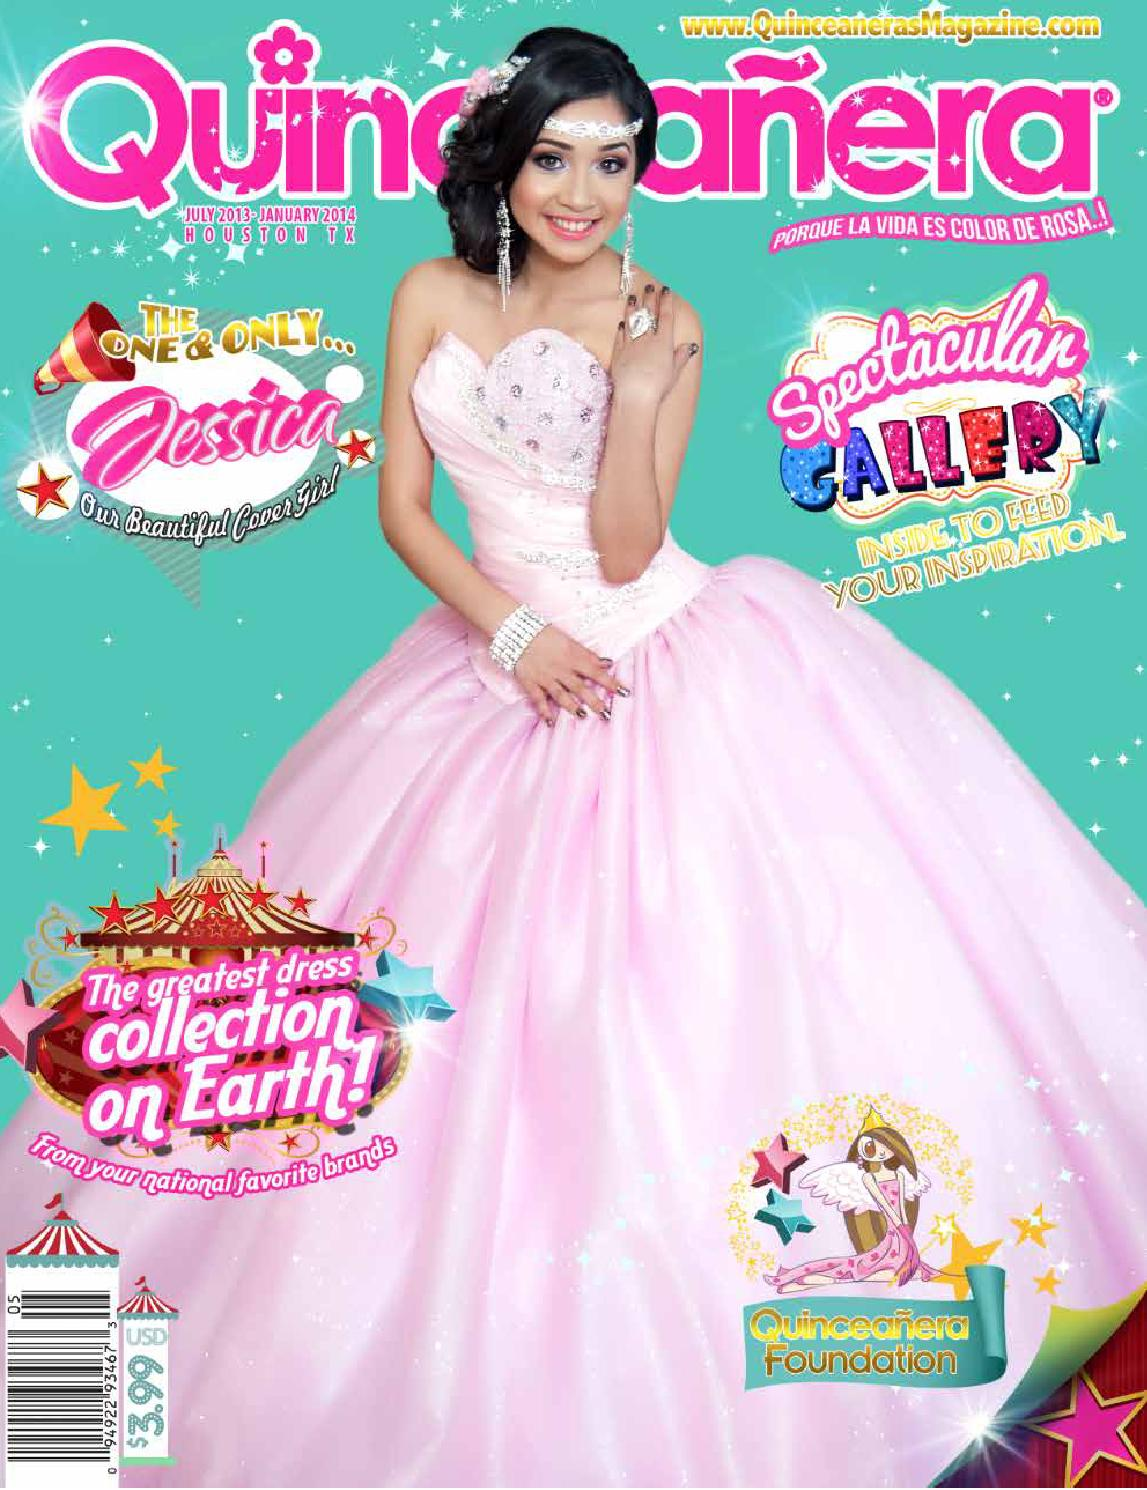 Quinceanera Magazine Houston 2013 2 version by Texas Quinceaneras ...